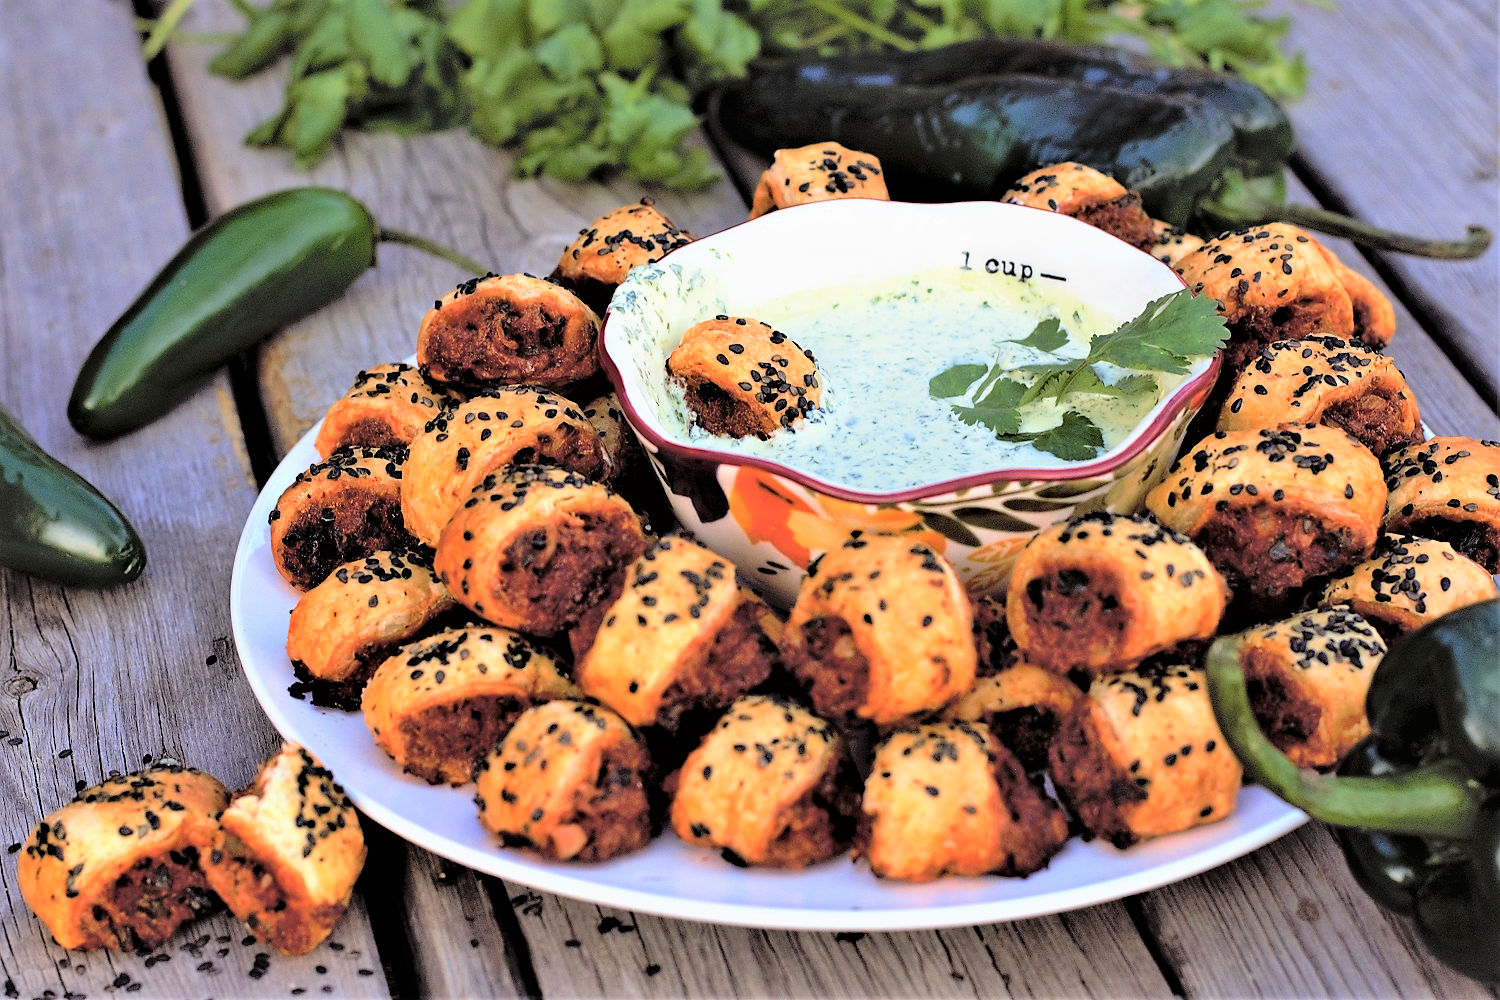 Crisp, flaky sausage rolls stuffed with a mixture of spicy chorizo & fresh poblano peppers paired with a super-simple cilantro lime dipping sauce - basically grown-up pizza rolls that are party ready for the weekend!